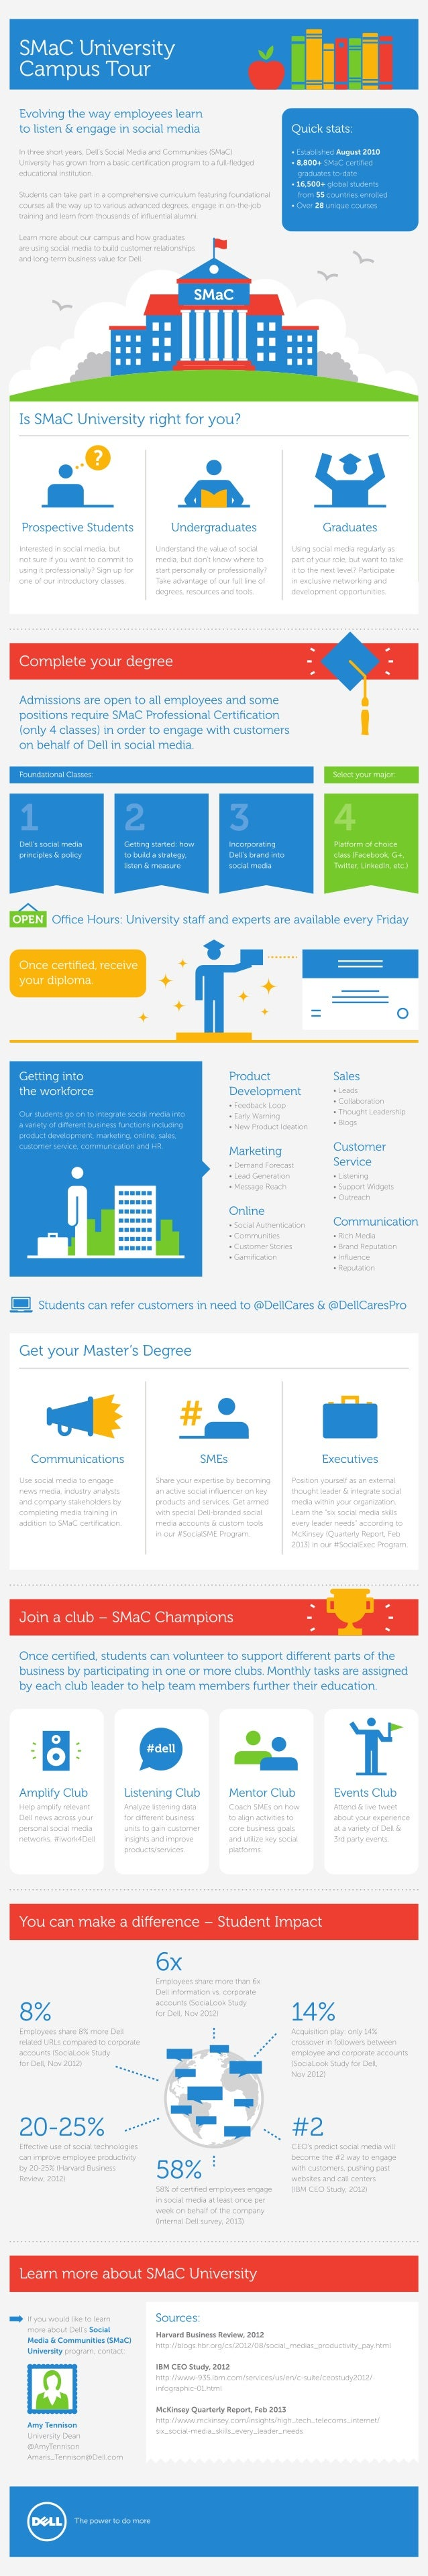 Infographic: Social Media and Community University at Dell